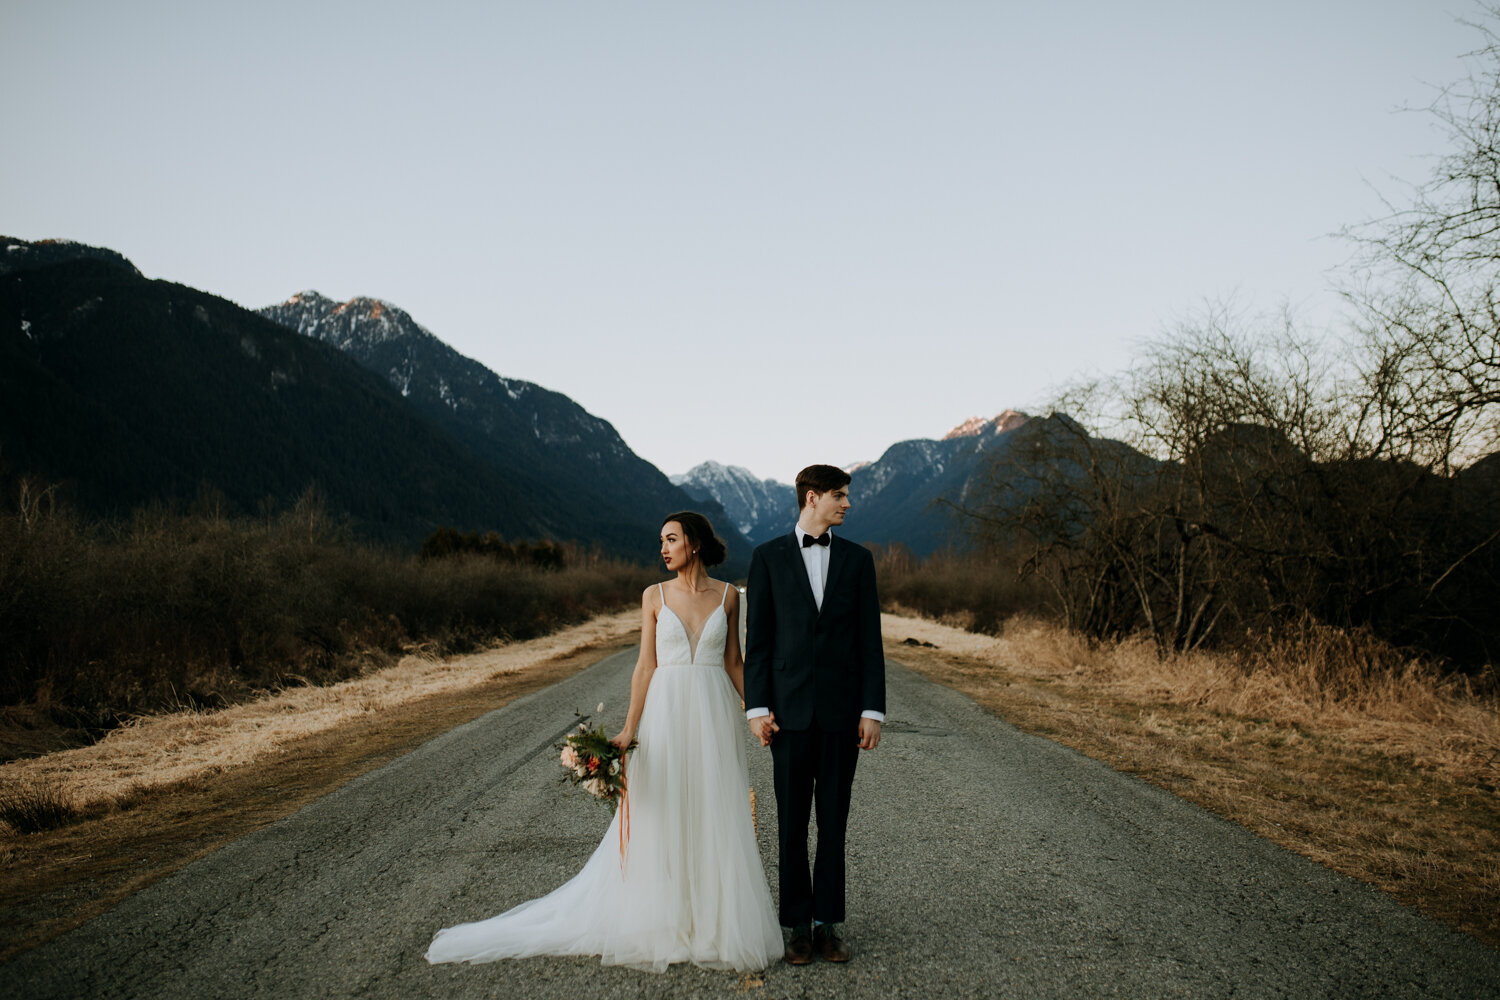 Pitt-lake-wedding-couple-mountians